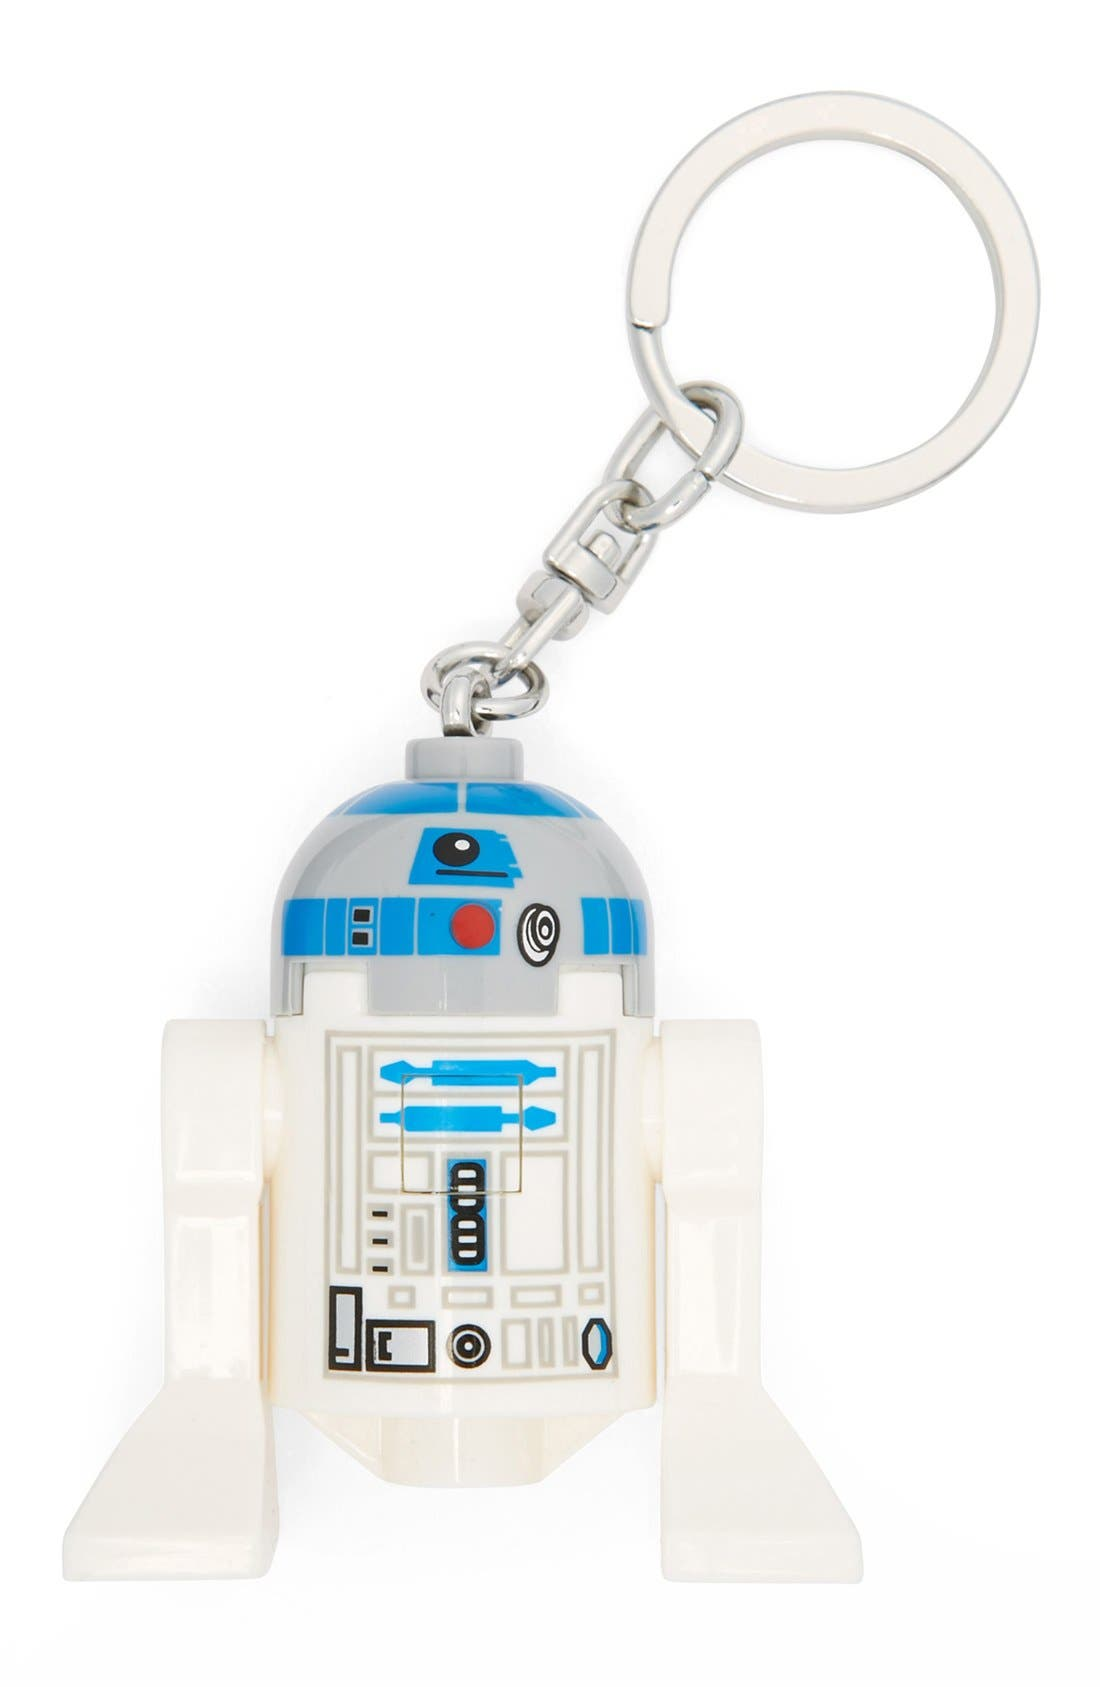 Alternate Image 1 Selected - Lego 'R2-D2' LED Key Chain